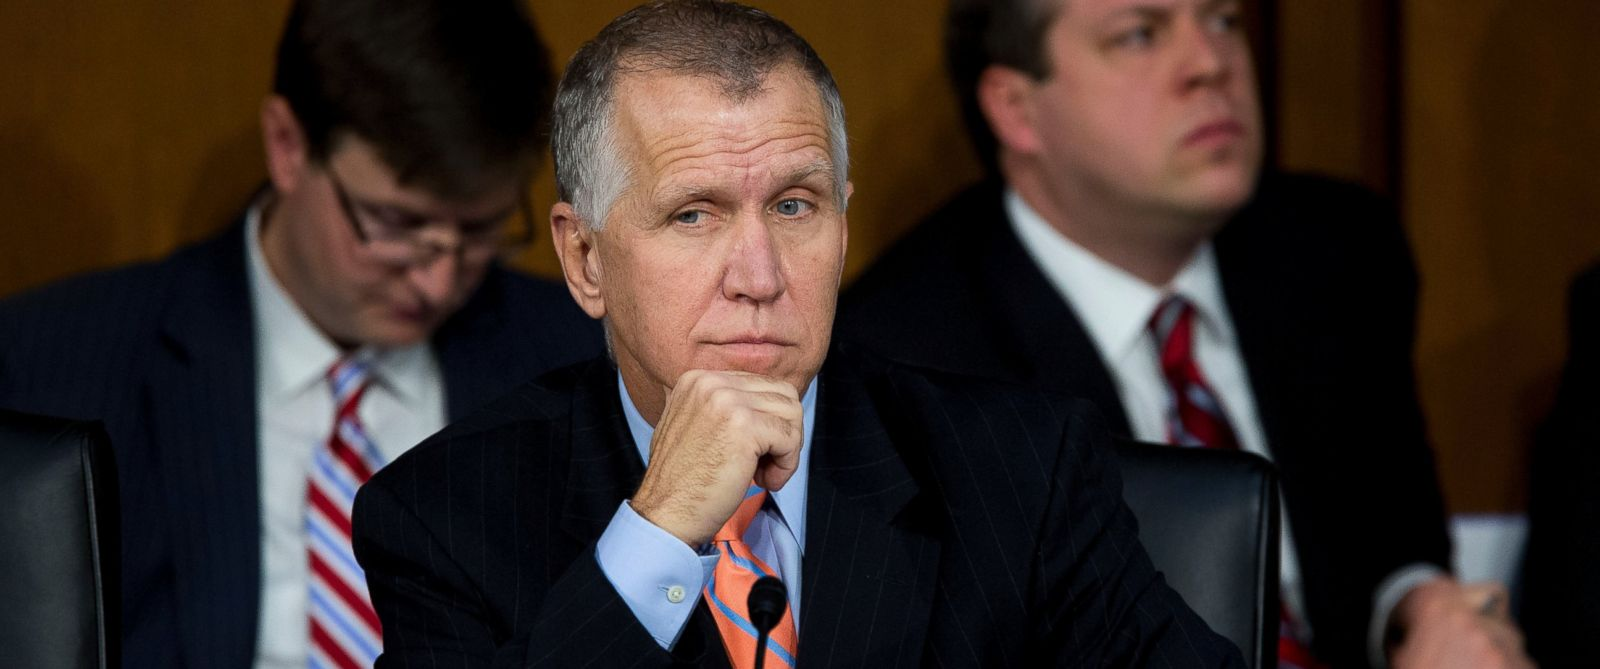 PHOTO: Sen. Thom Tillis, a Republican from North Carolina, listens during a Senate Judiciary Committee nomination hearing for Loretta Lynch in Washington, D.C. on Jan. 28, 2015.